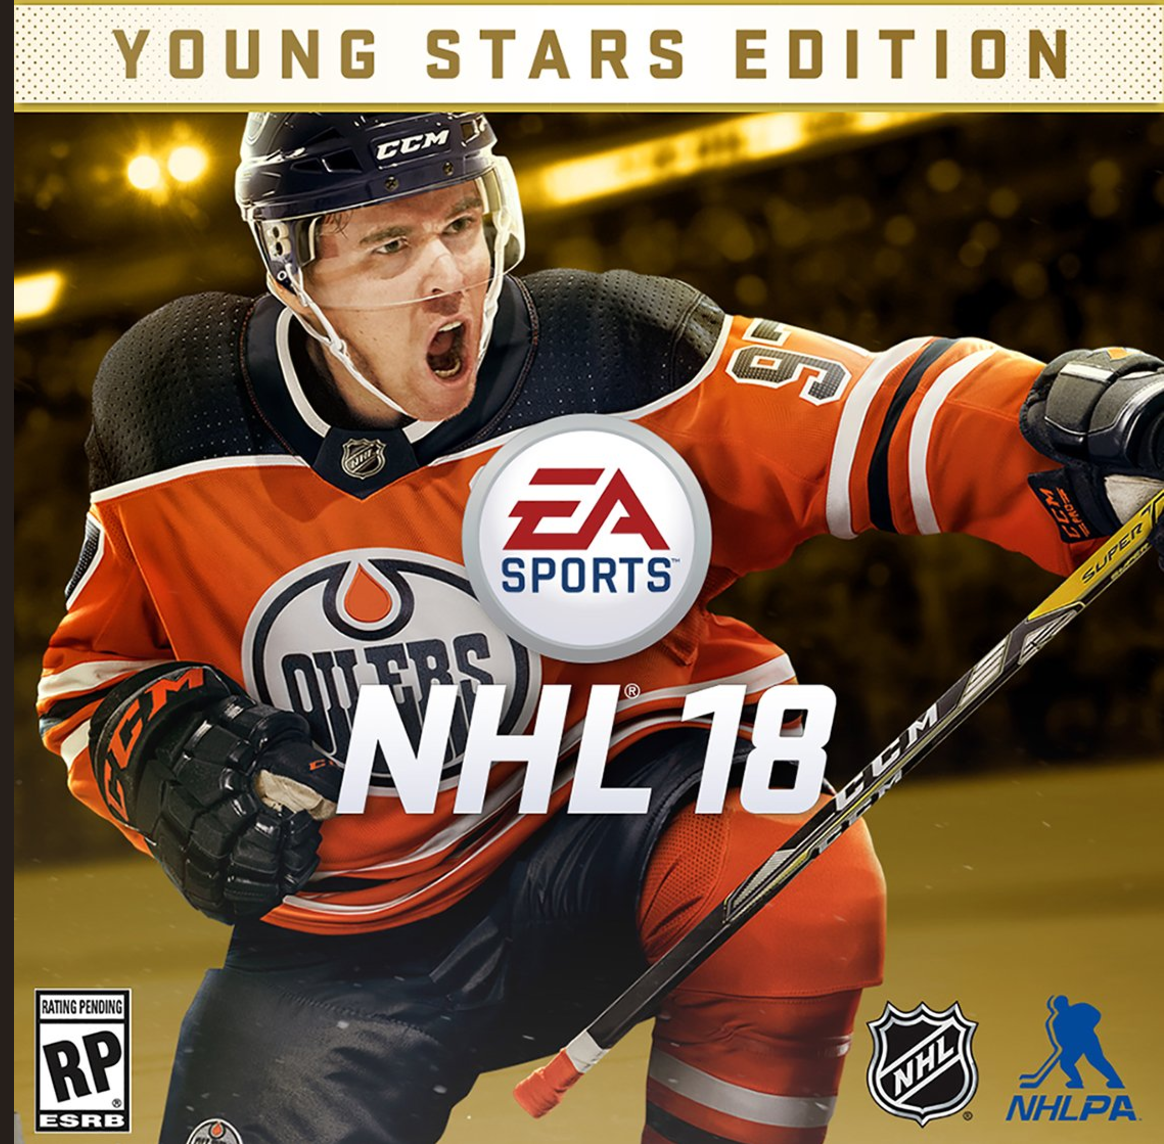 589721f1c75 Connor McDavid is EA Sports  highest rated player in NHL 18